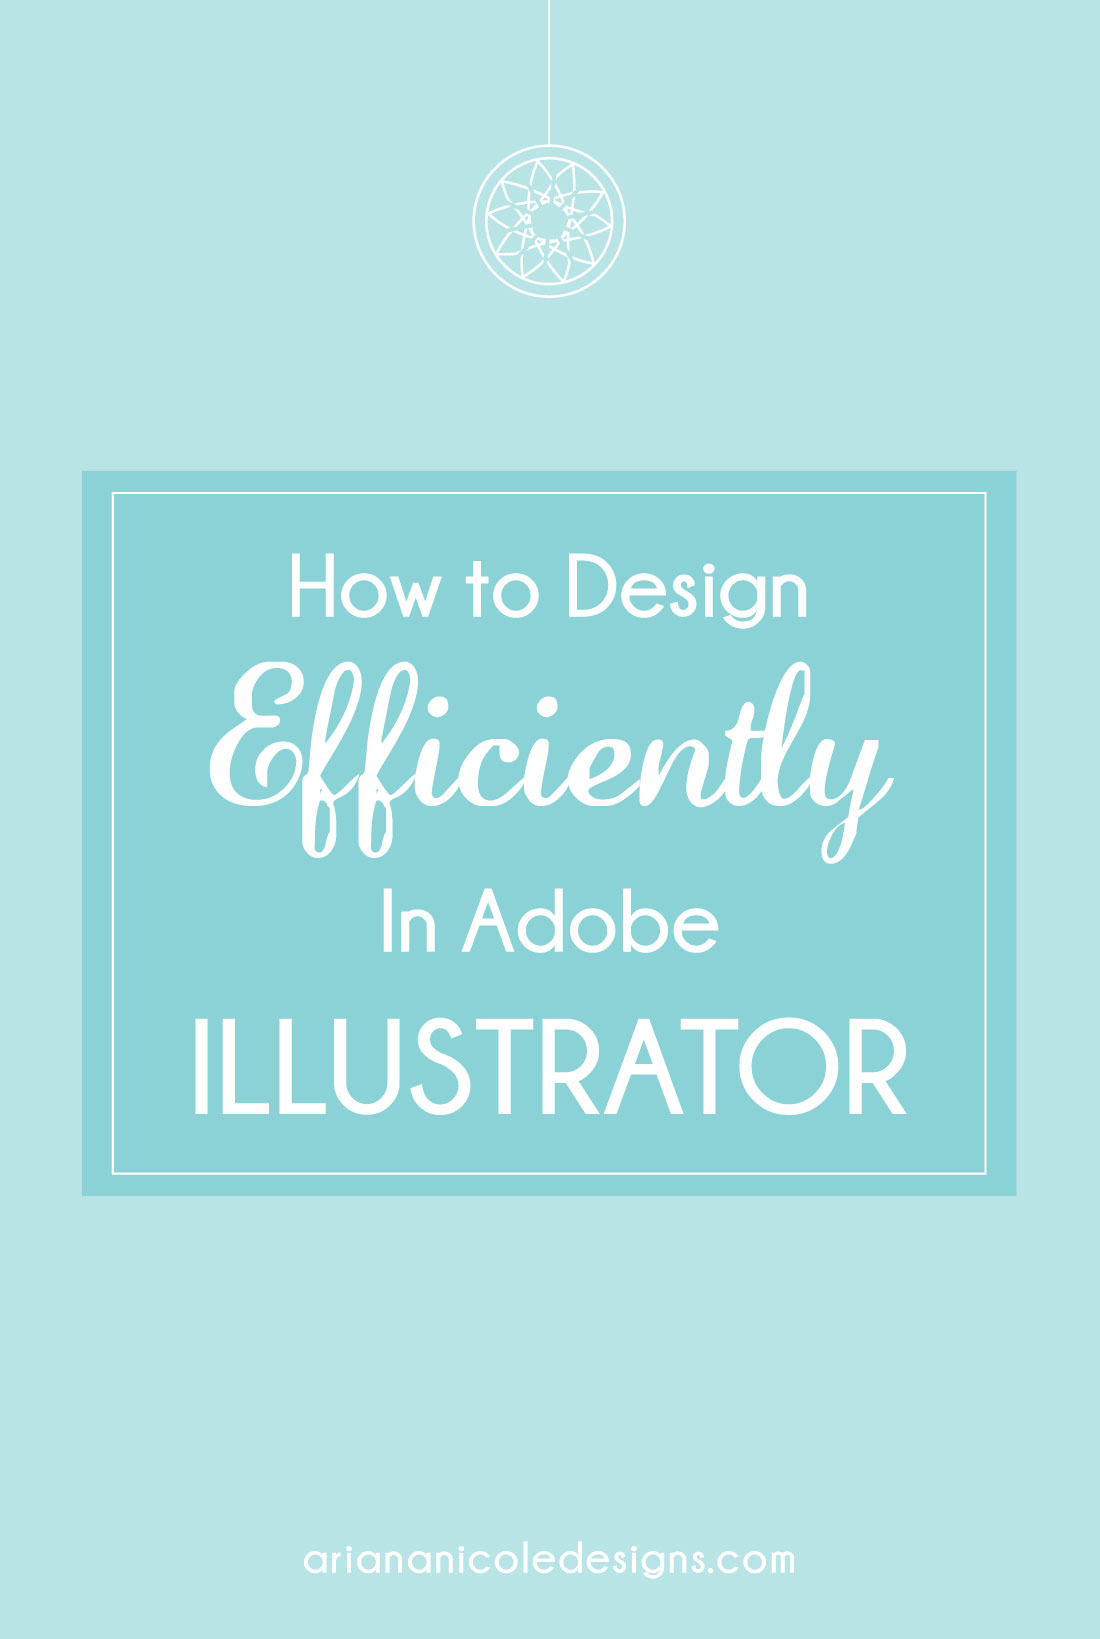 How_To_Design_Efficiently_In_Adobe_Illustrator-1100